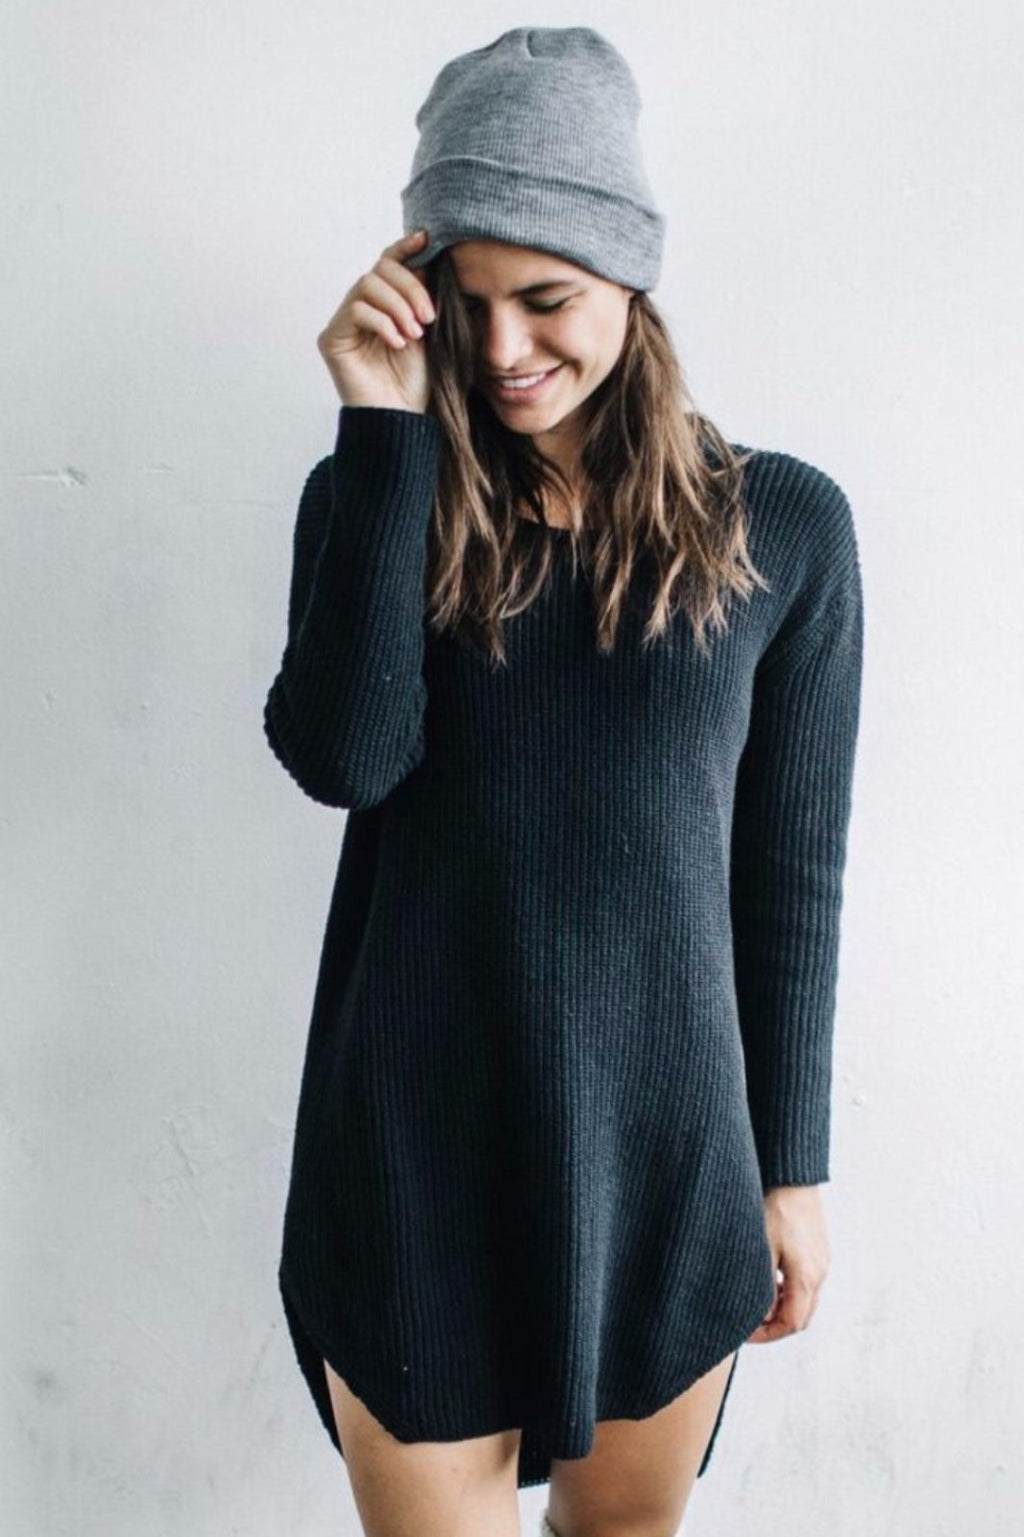 My Obsession Sweater Dress - Final Sale - Final Sale